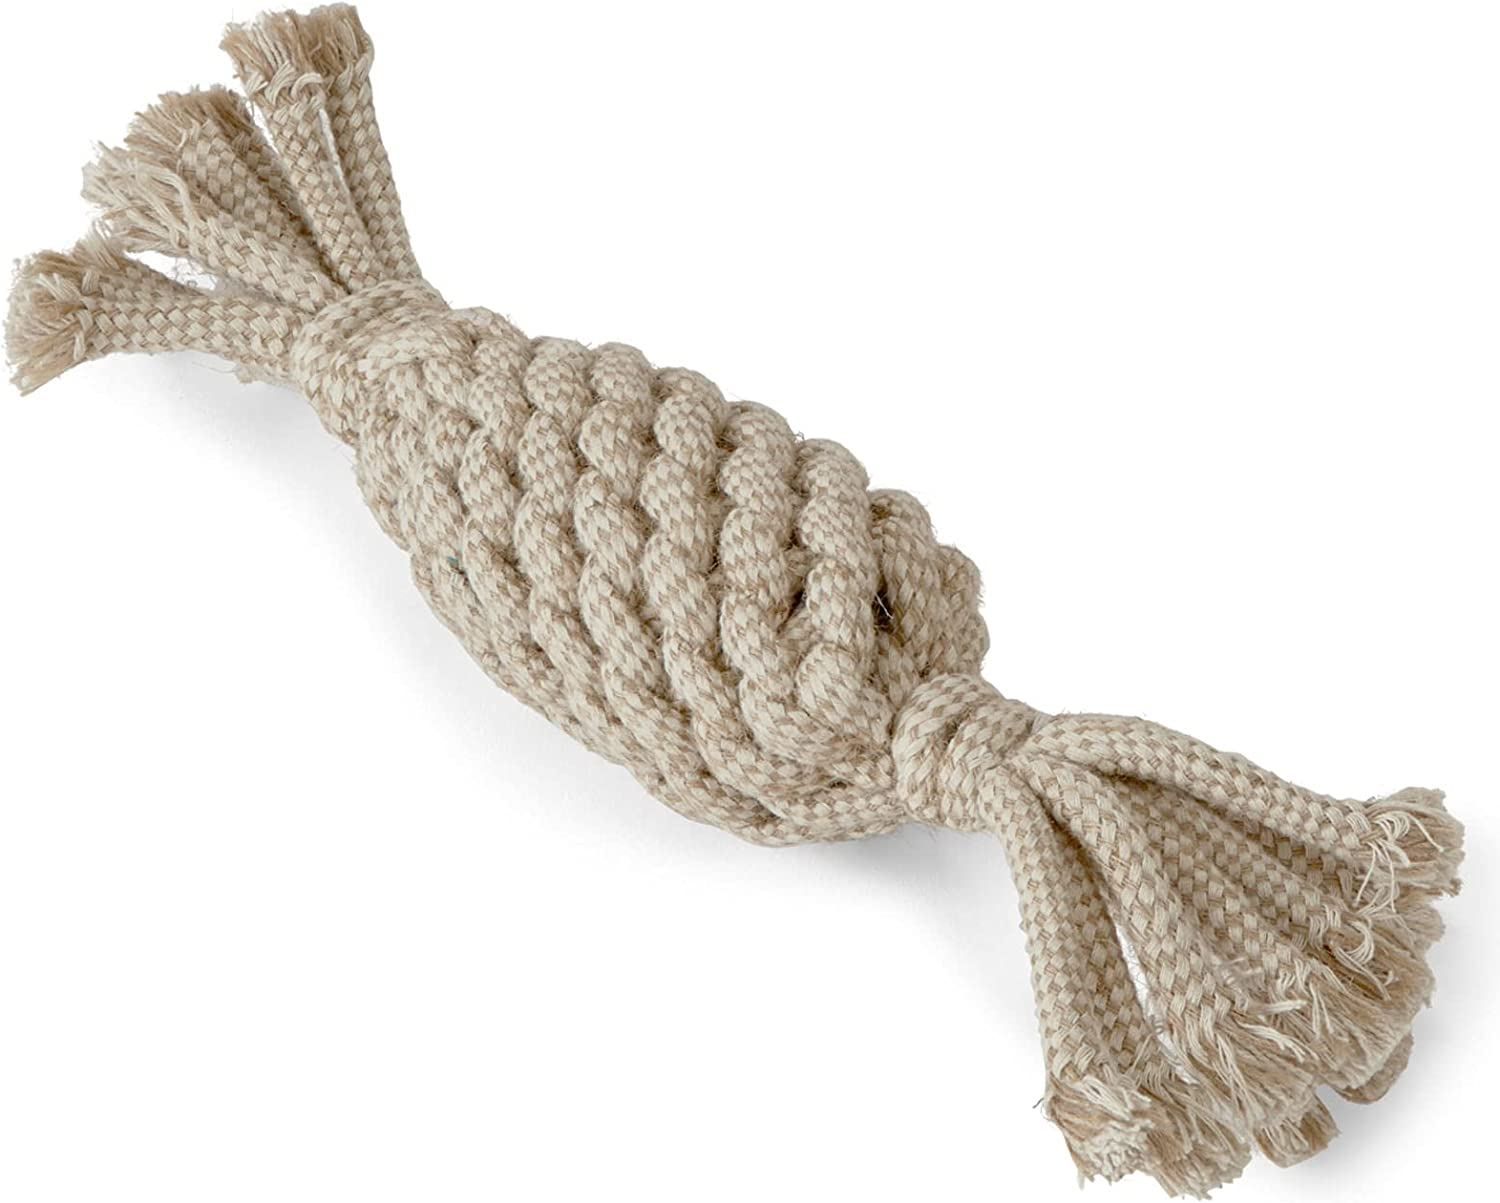 Aussie Naturals Natural Popular Raleigh Mall Rope Dog Pineapple Toy